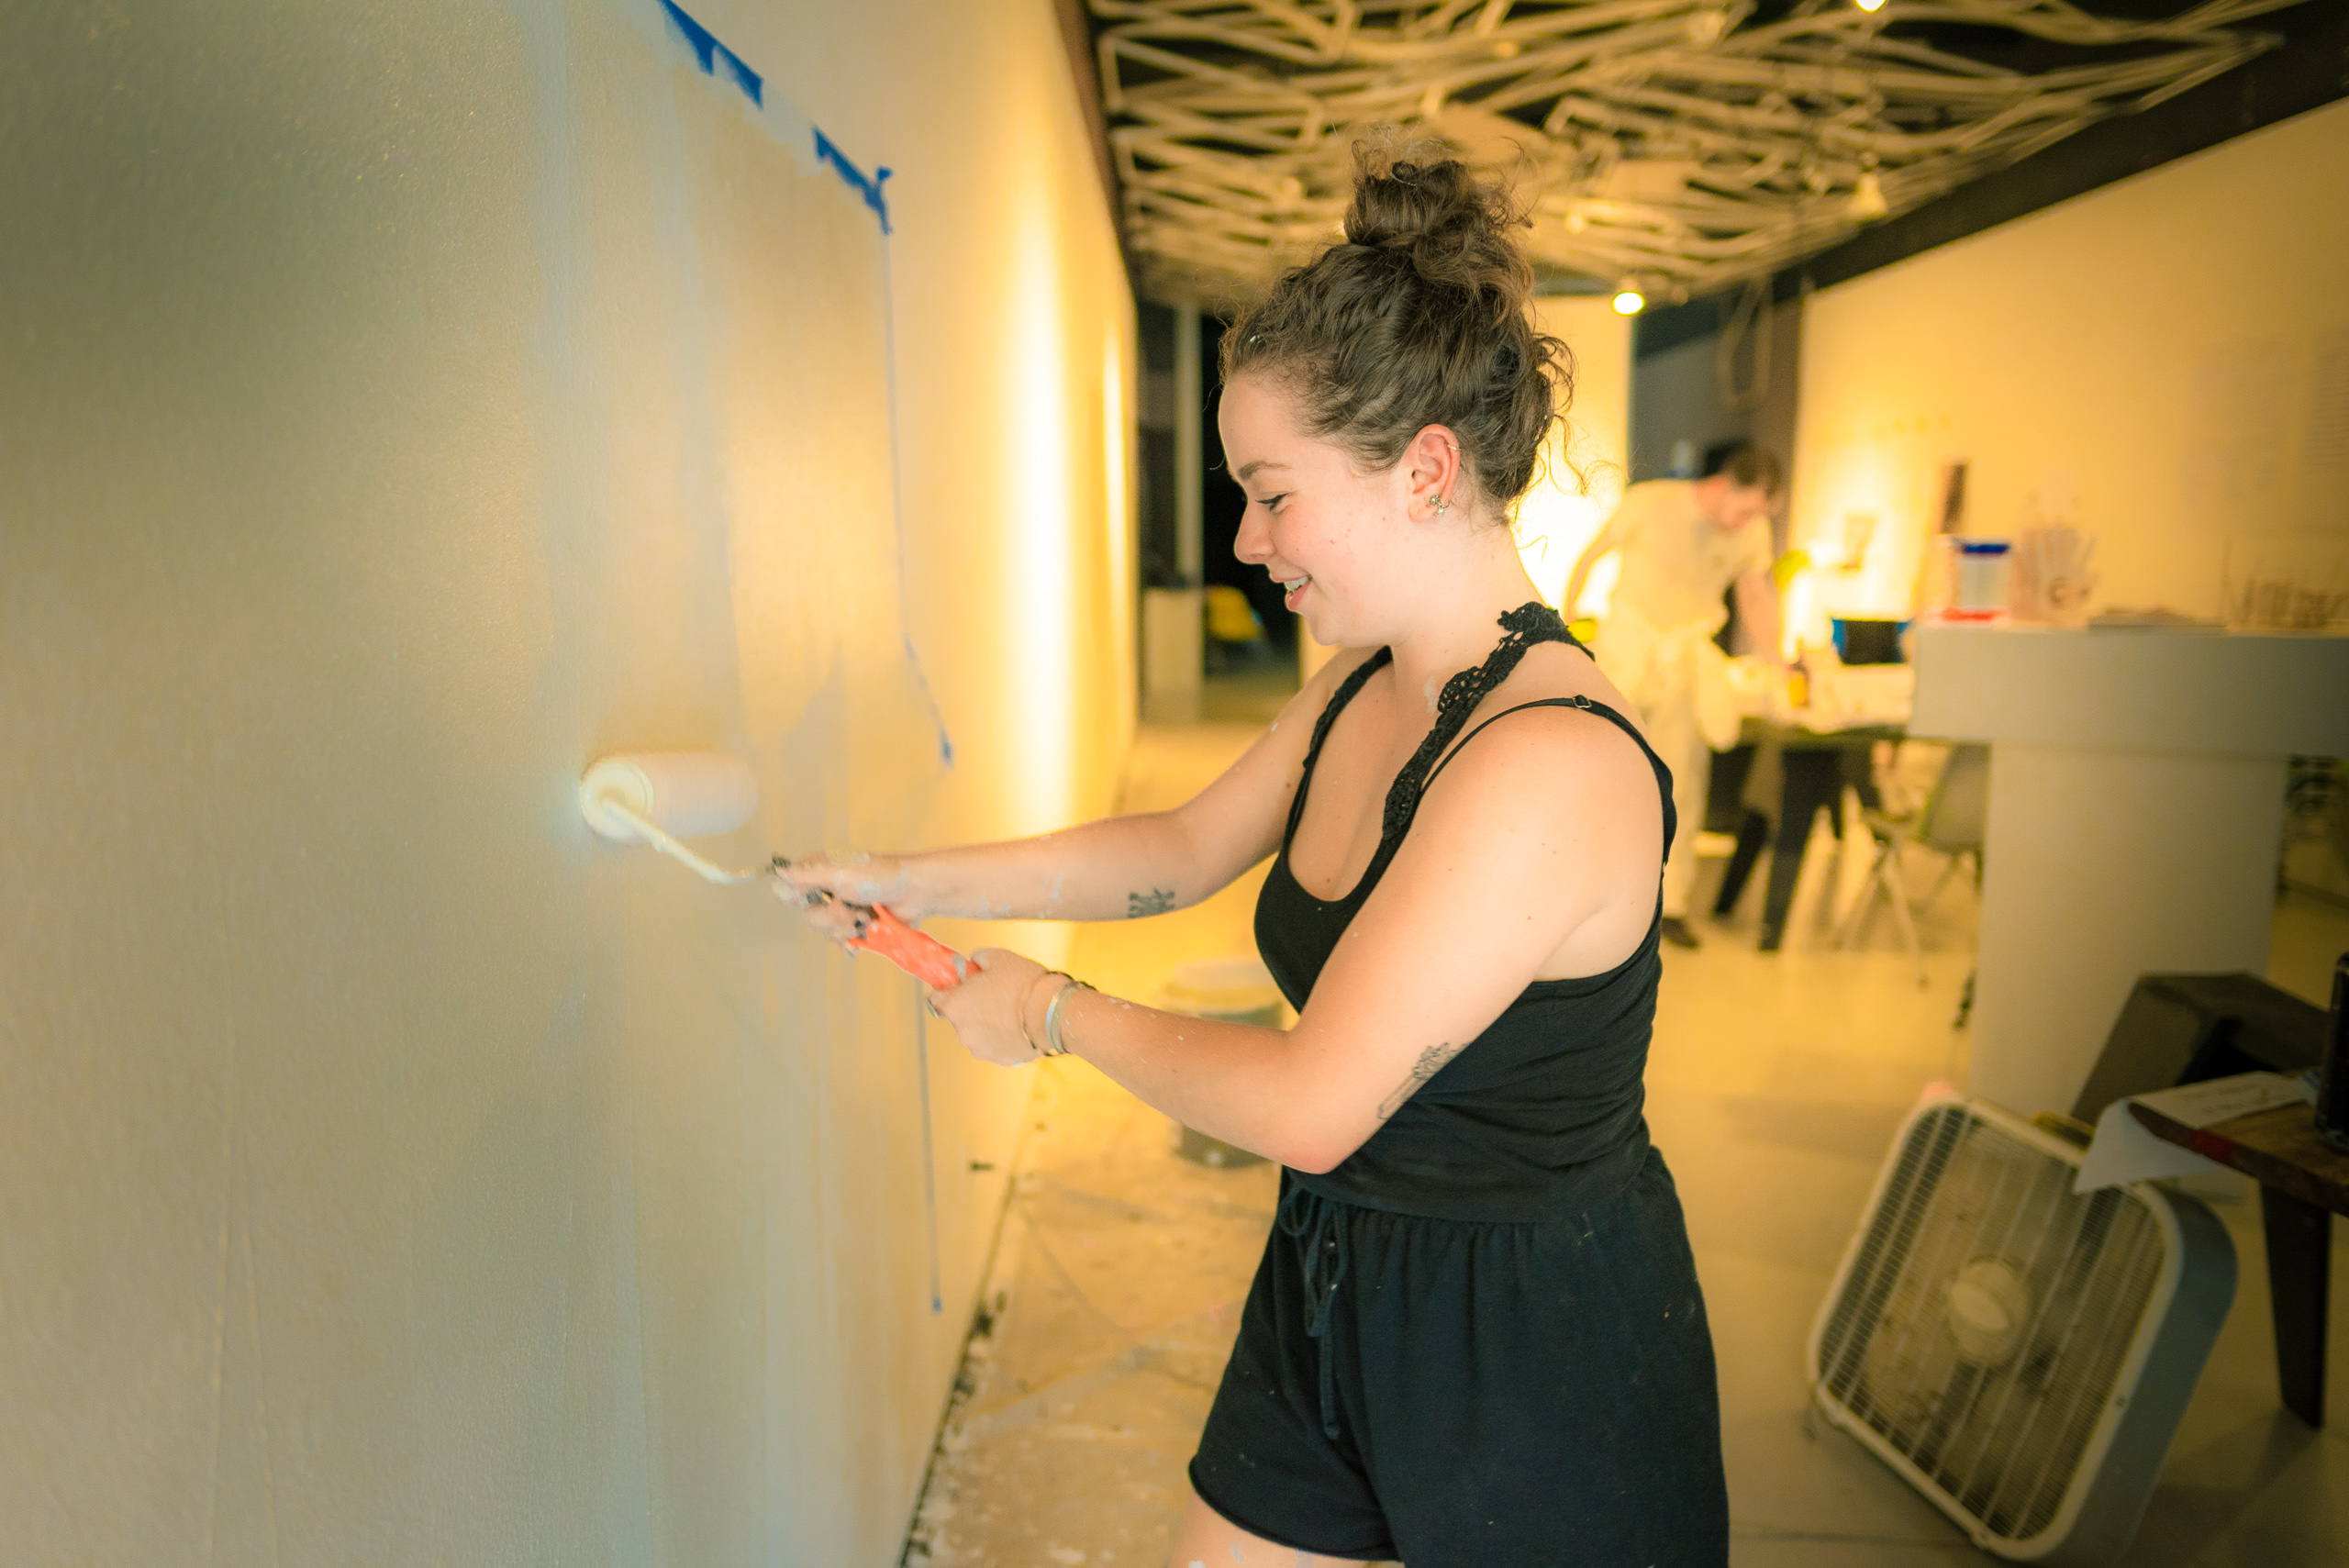 Katya Zirulnik and Jacob Gulezian (Free School of Architecture 2018) paint the walls at WUHO (Woodbury University Hollywood) in preparation for the upcoming FSA final exhibition.